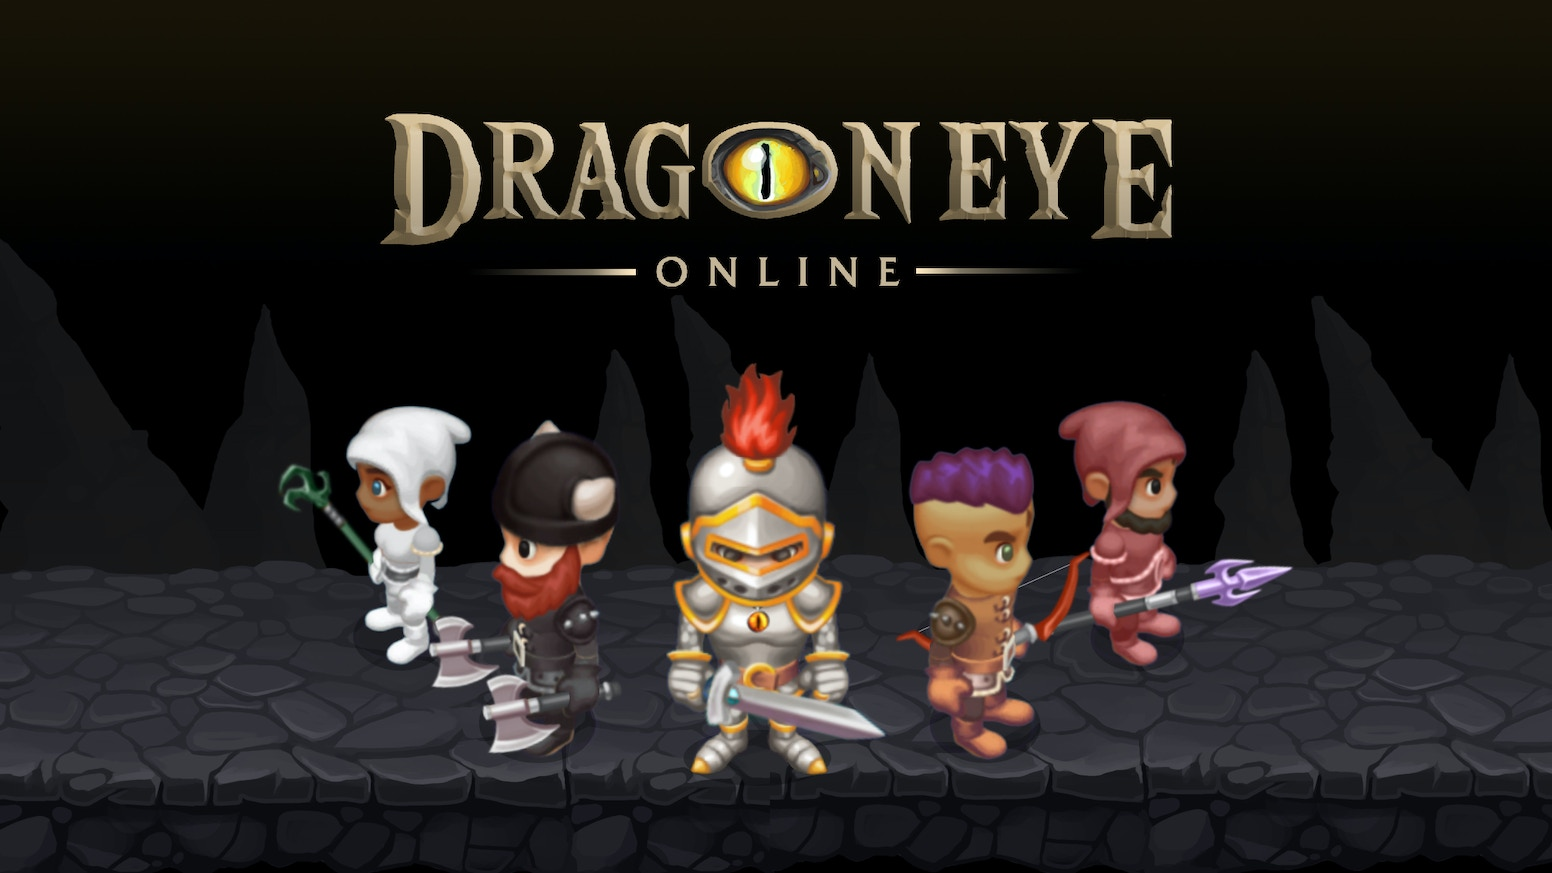 Dragon Eye Online is a cross-platform, no P2W, fantasy MMORPG with a player-driven economy. Let's make something special together.